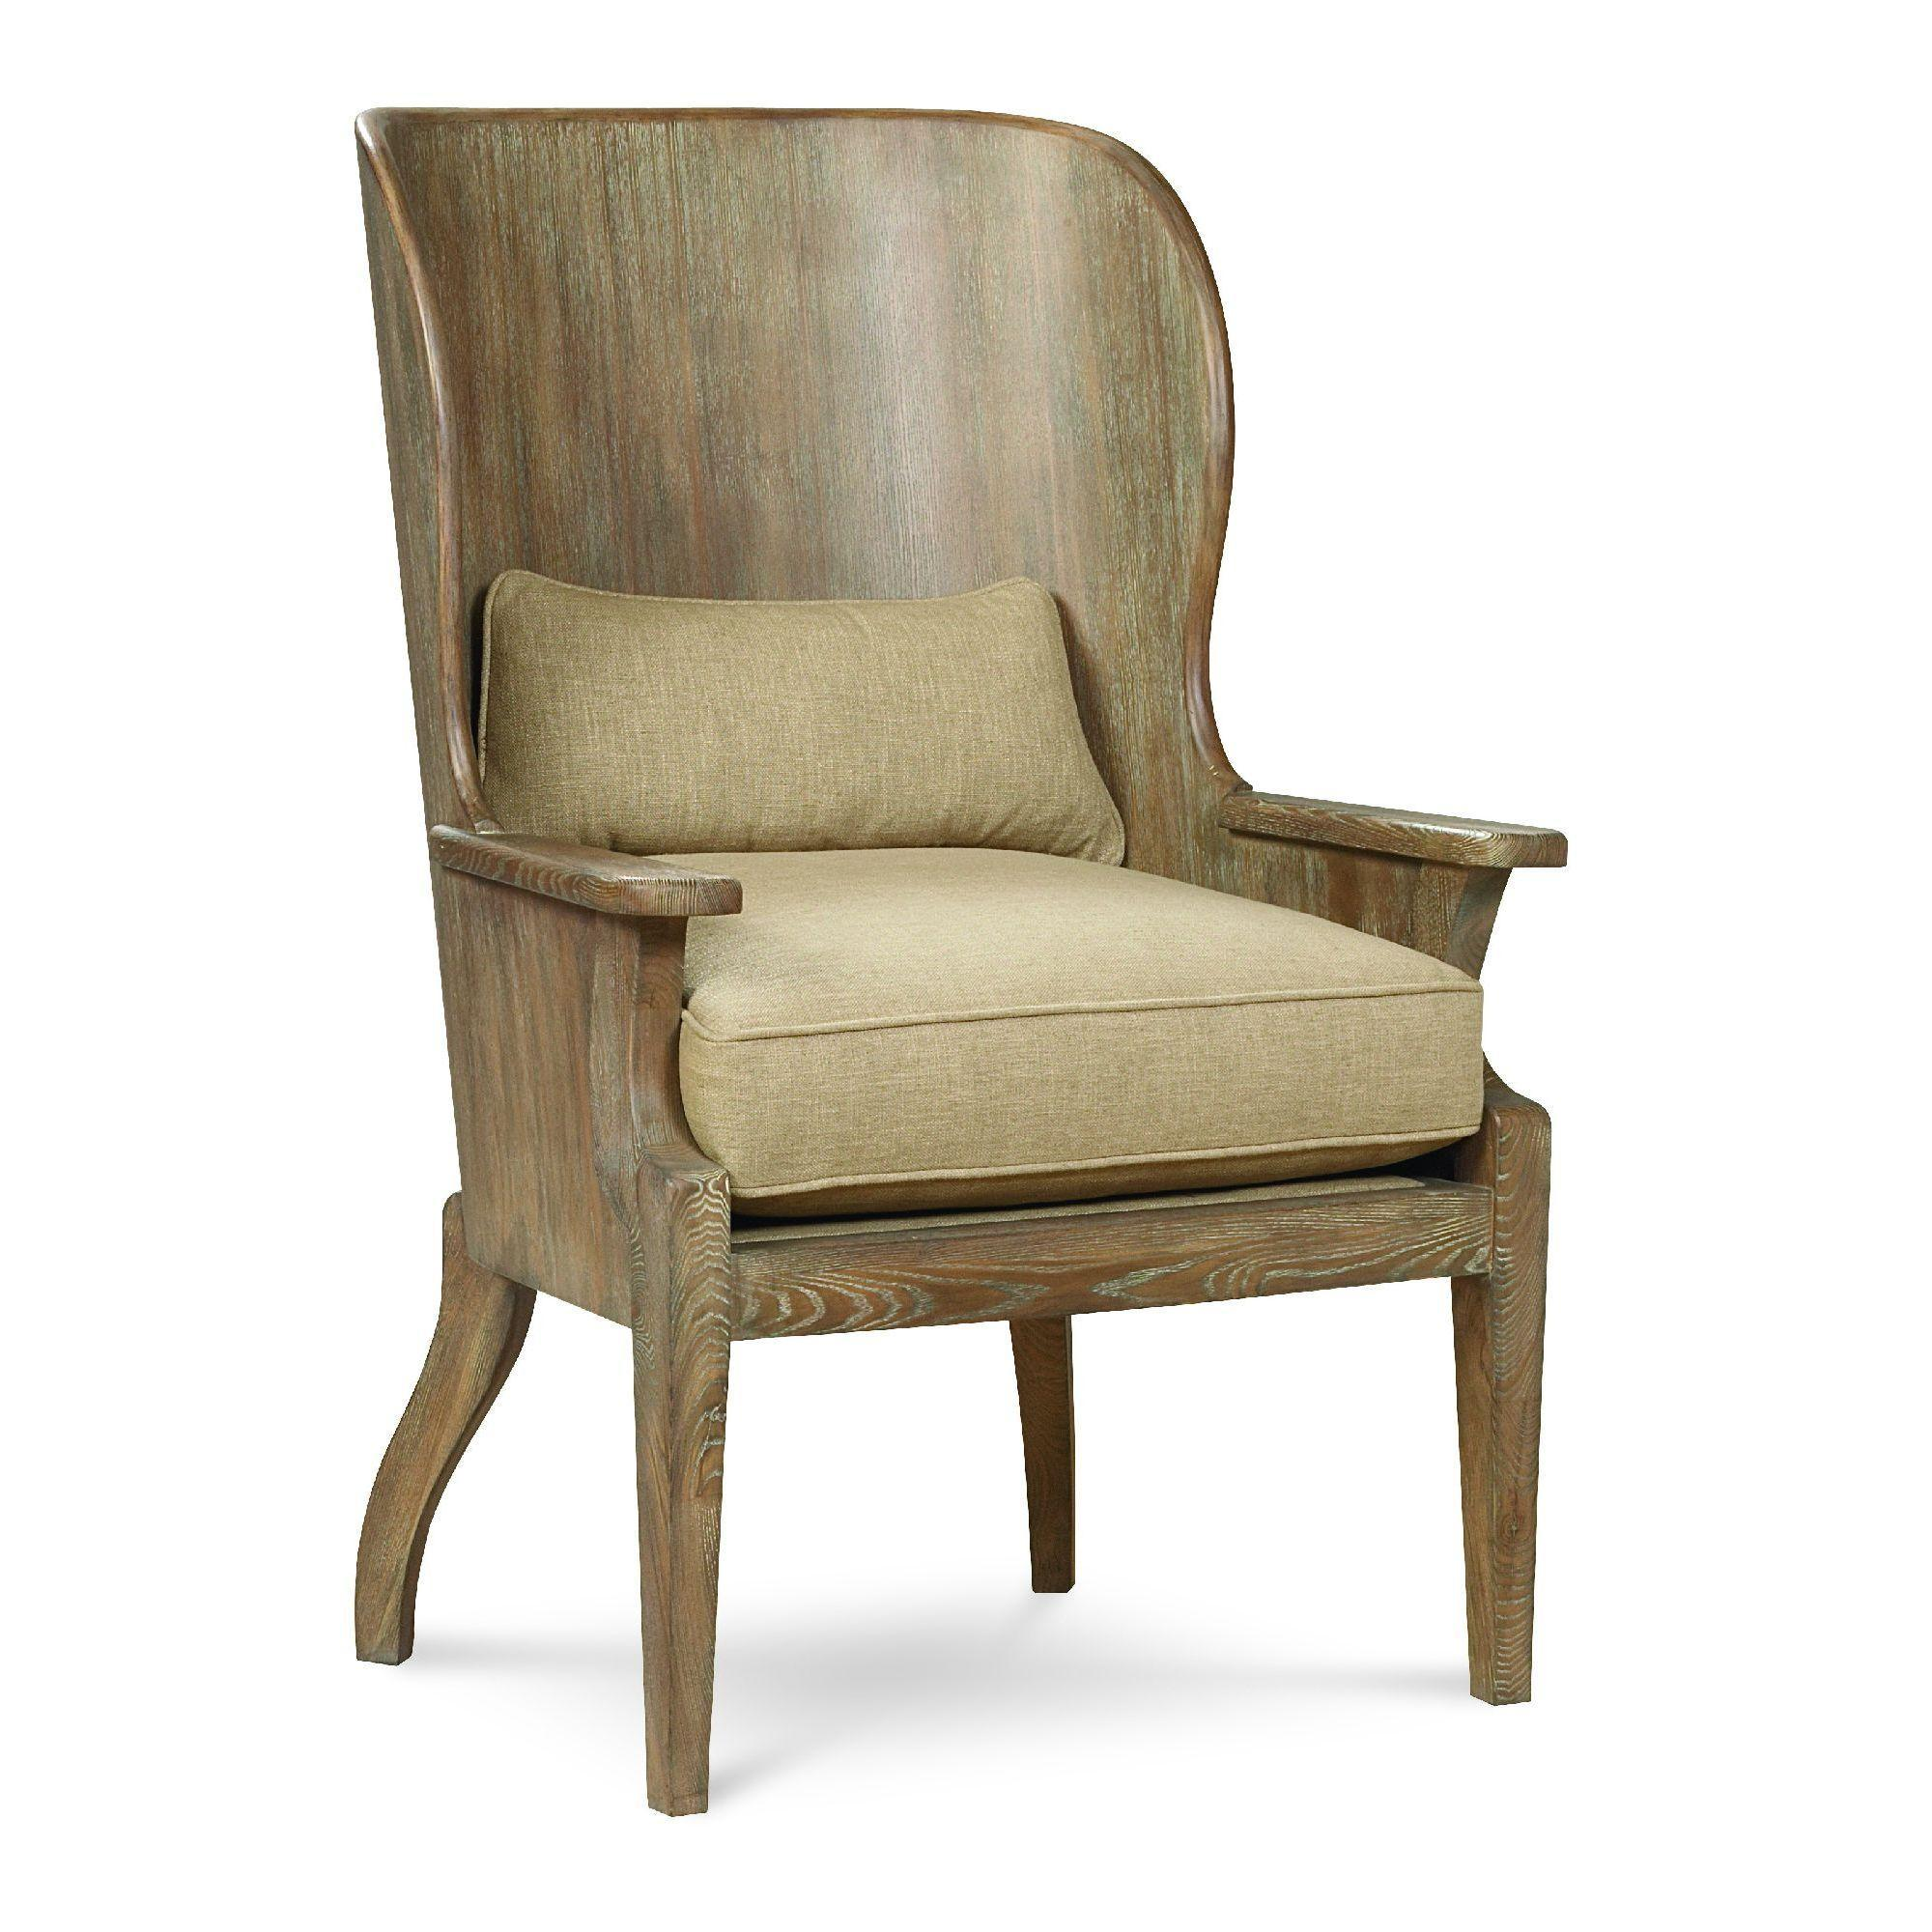 Schnadig Home Wood Wing Chair - Schnadig-8550-314-a | Candelabra, Inc.